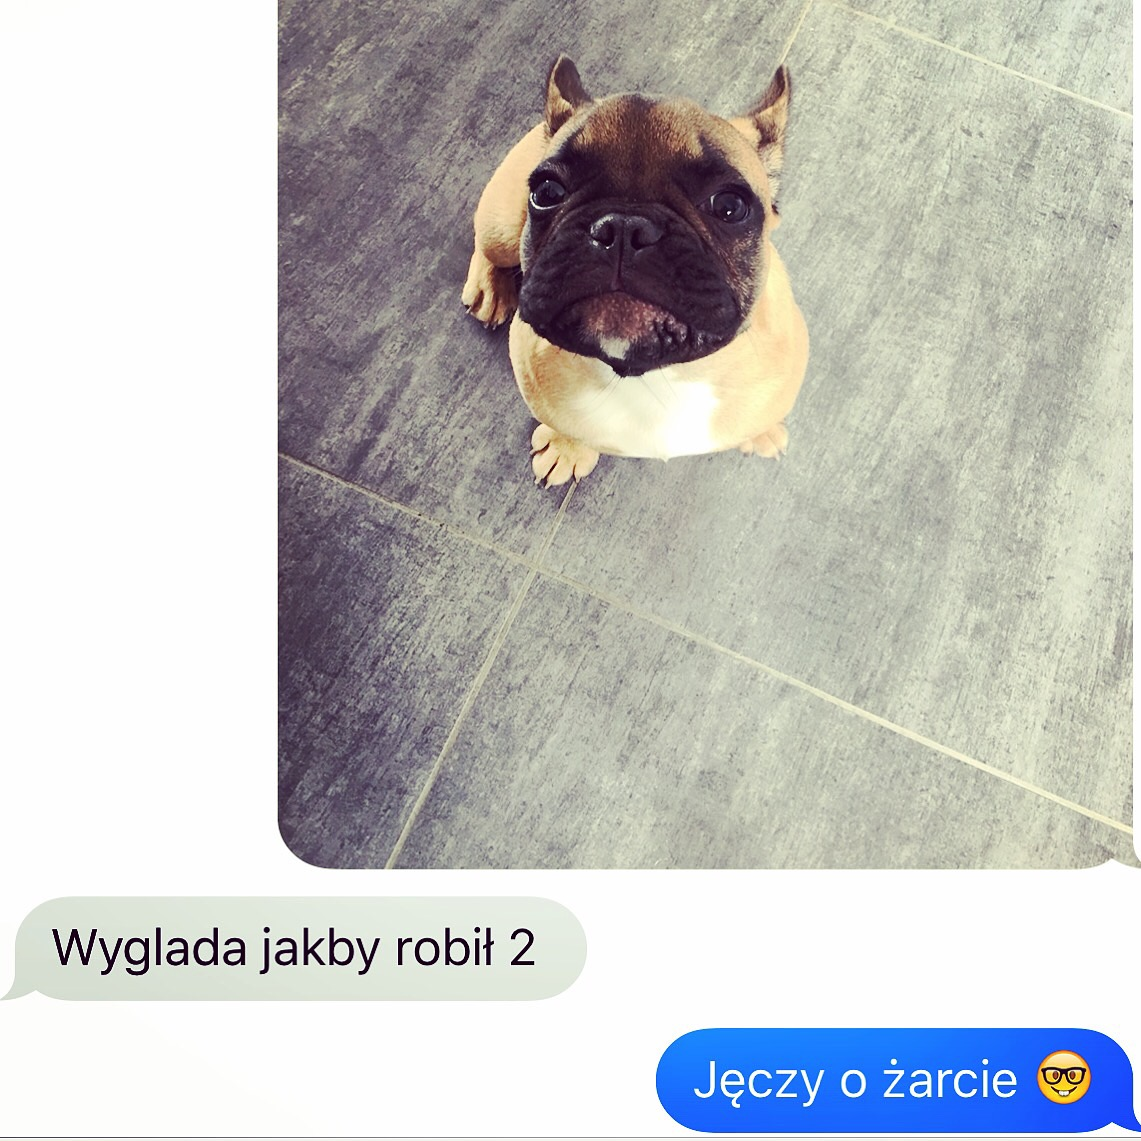 janusz_the_frenchie_22